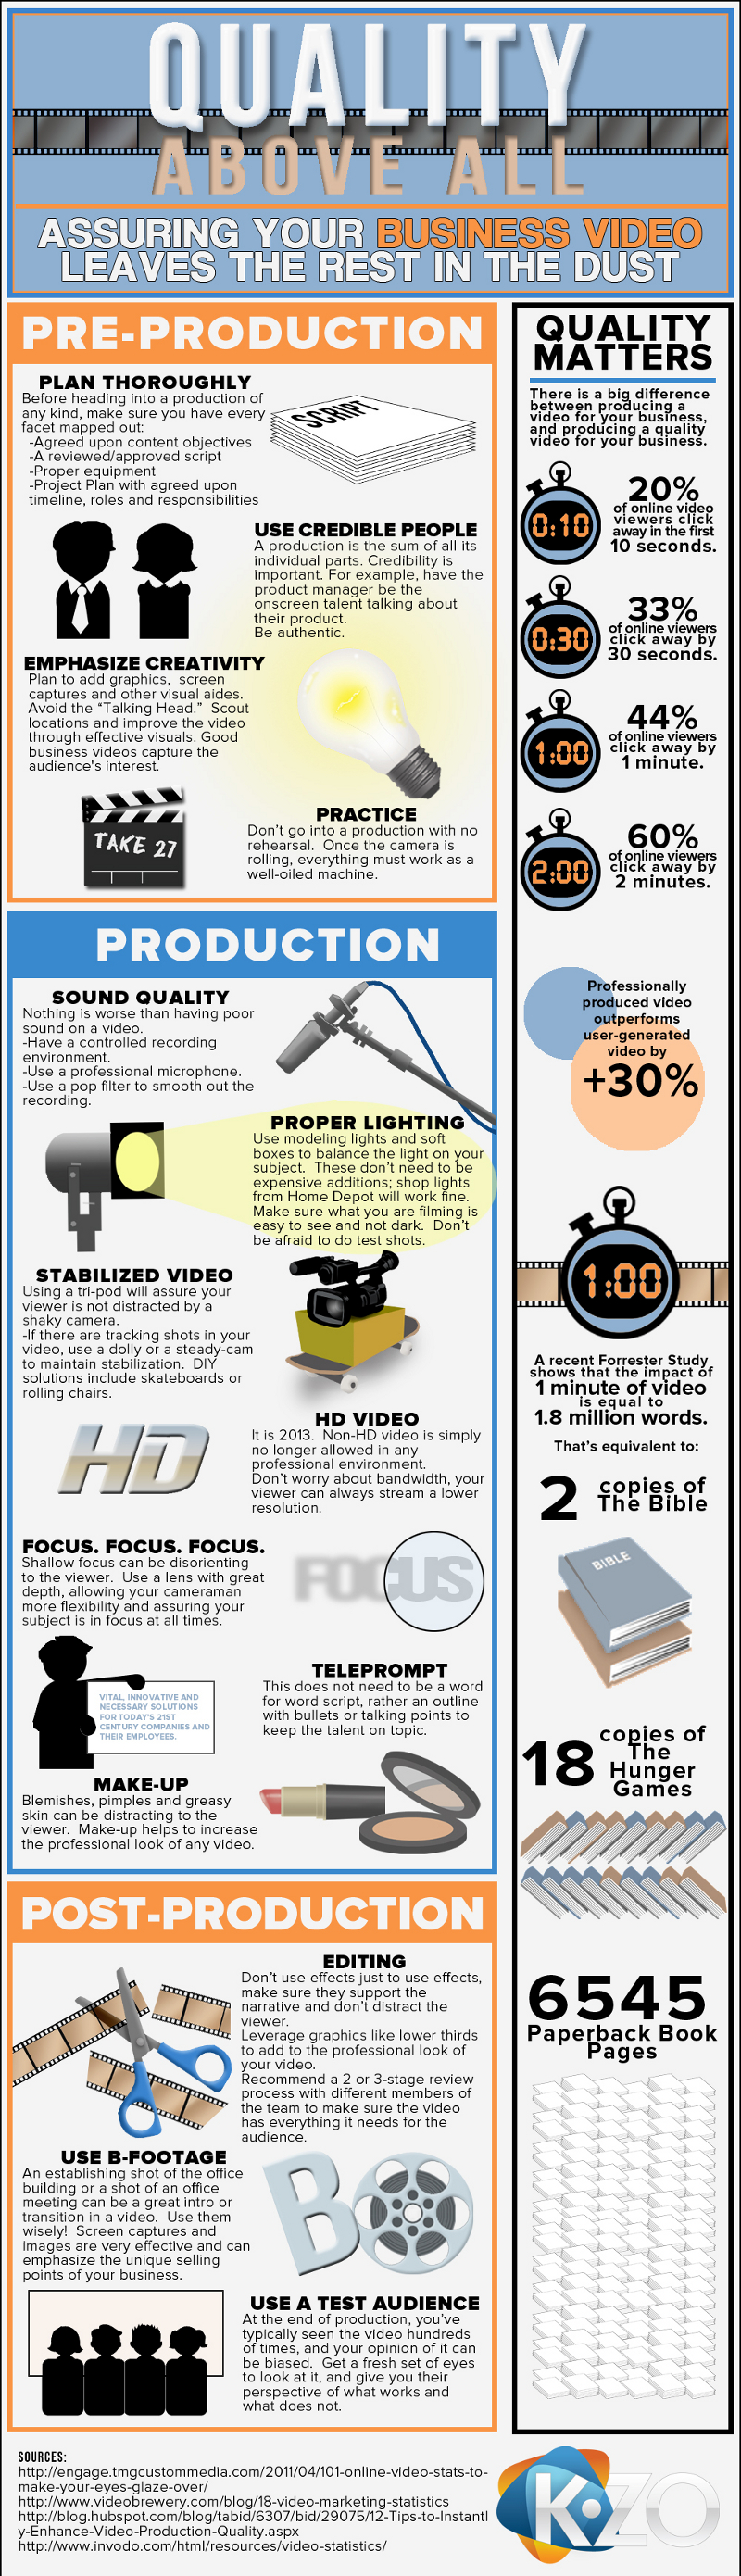 Business Video Production Guide Business Video Production Guide and Tips